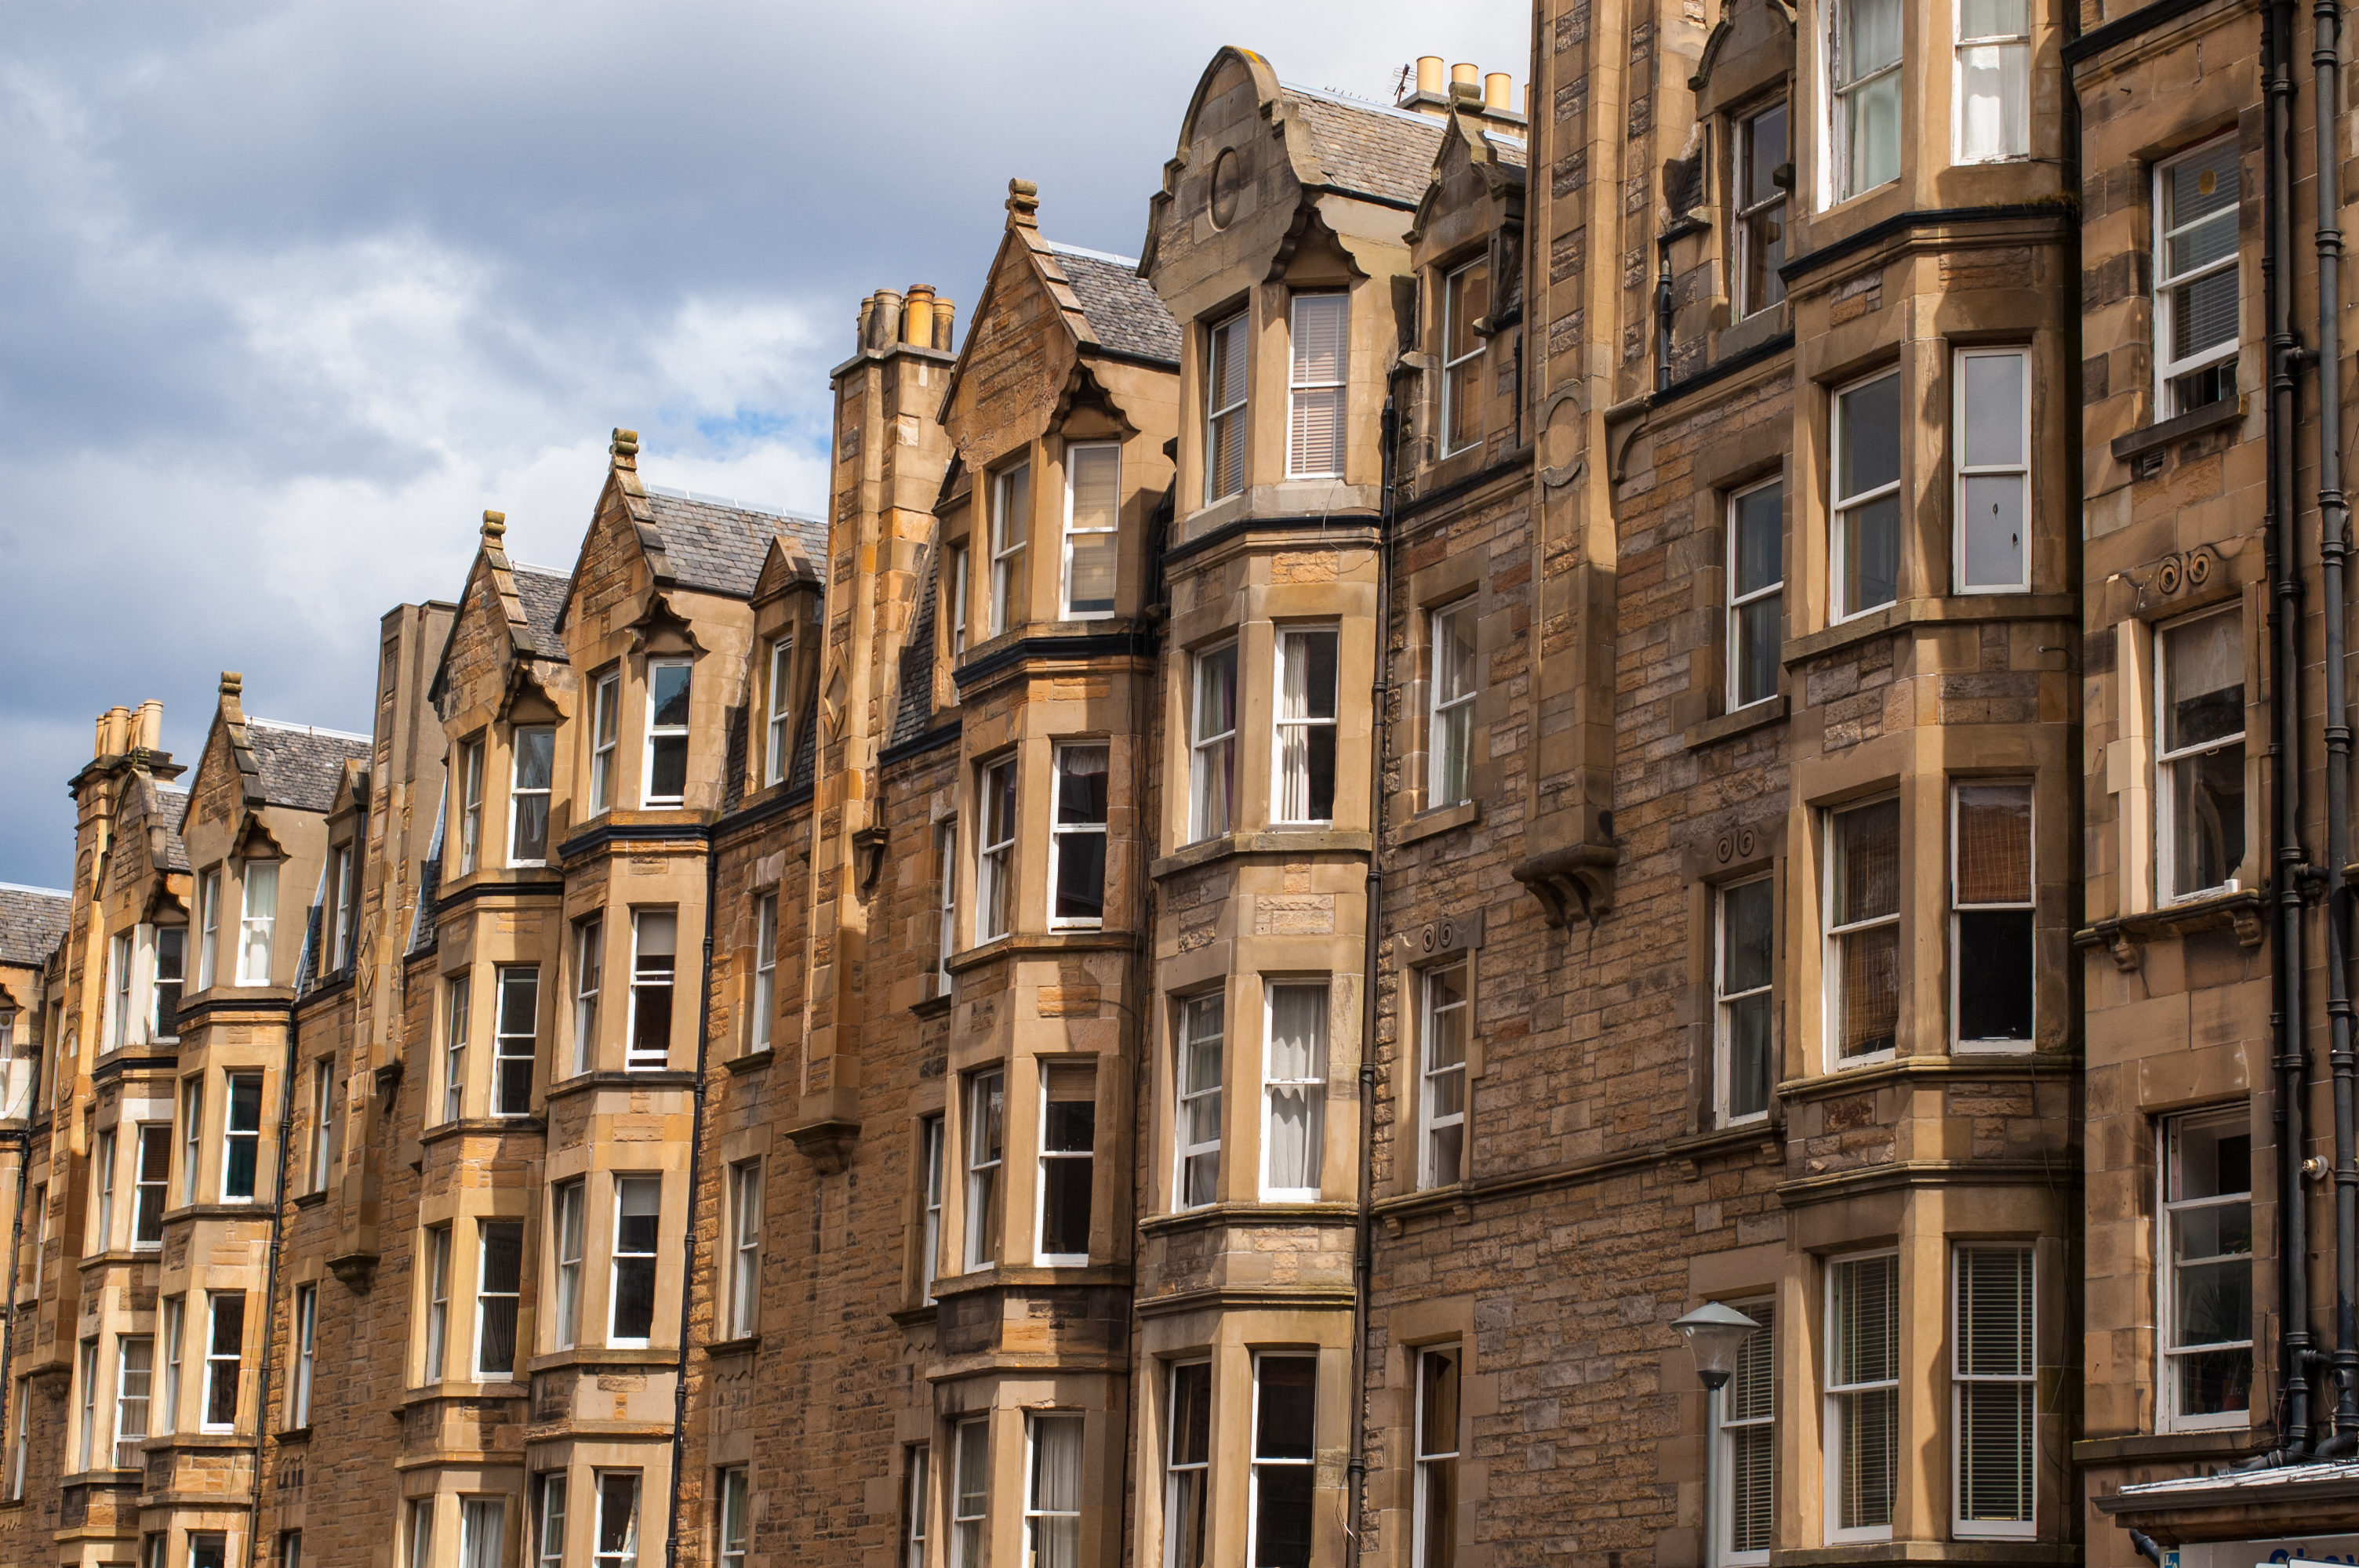 Victorian tenement housing in Edinburgh, Morningside. (iStock)